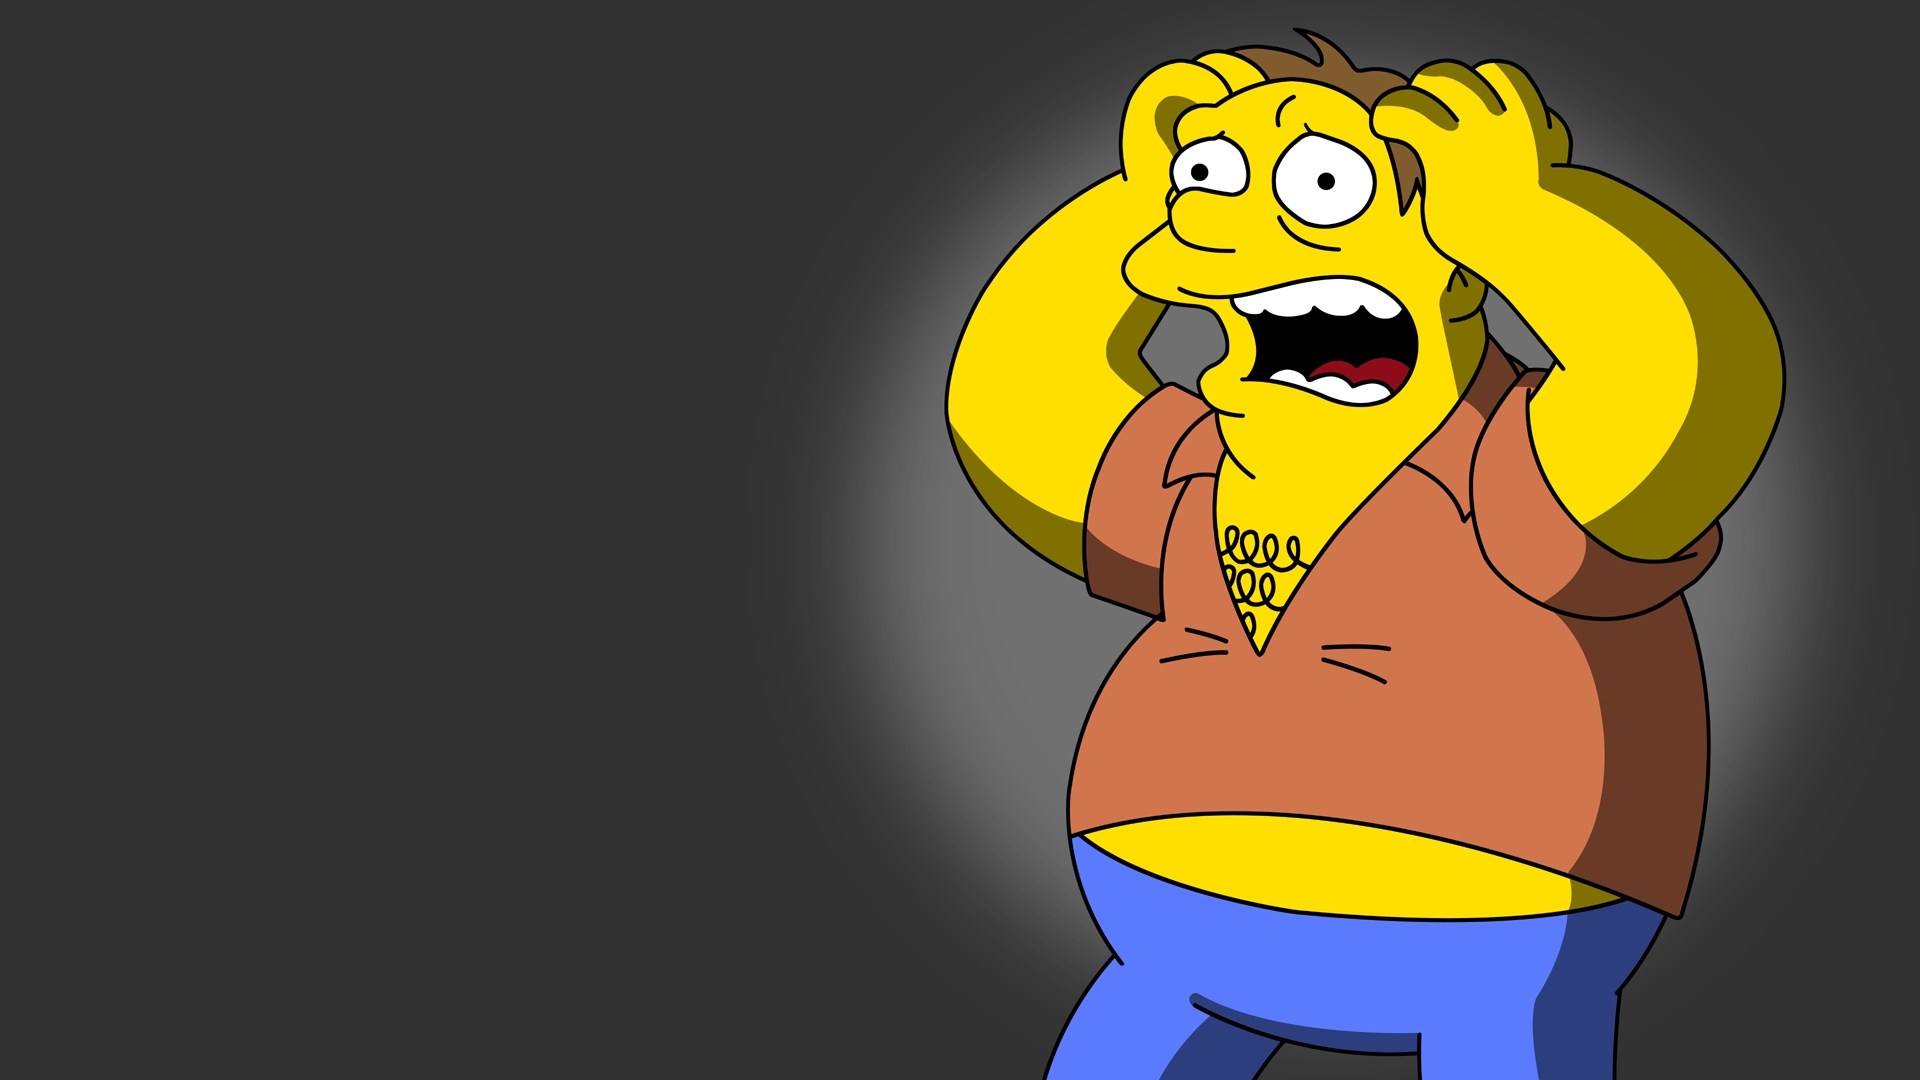 The Simpsons Wallpapers Pictures Images